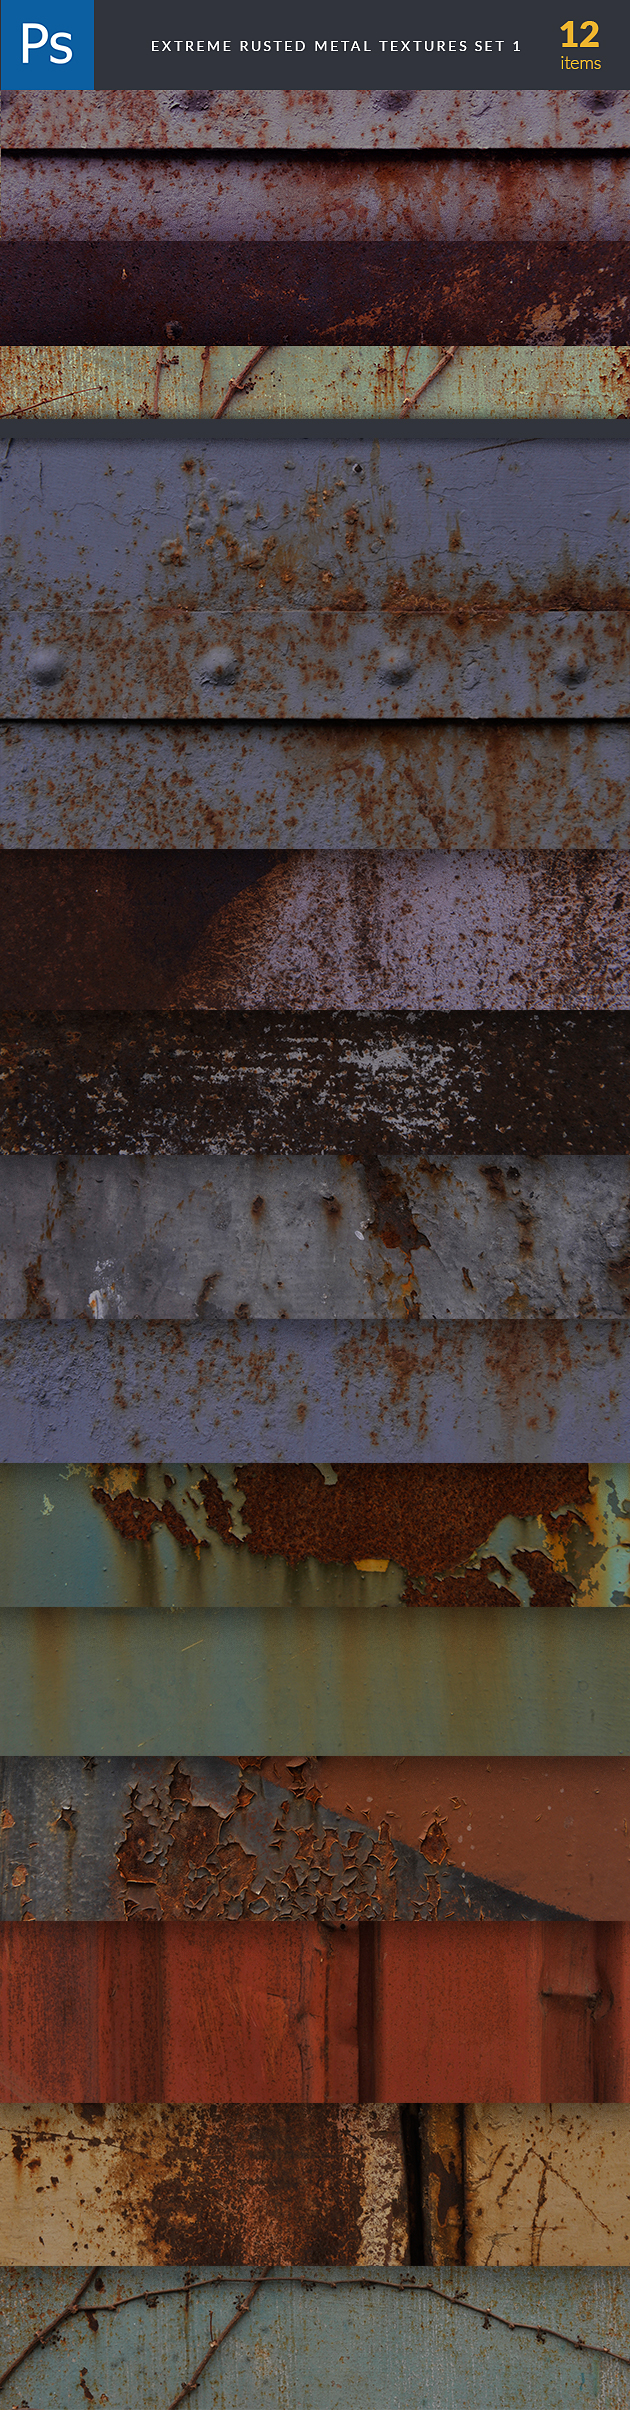 designtnt-textures-extreme-rusted-metal-set-preview-large